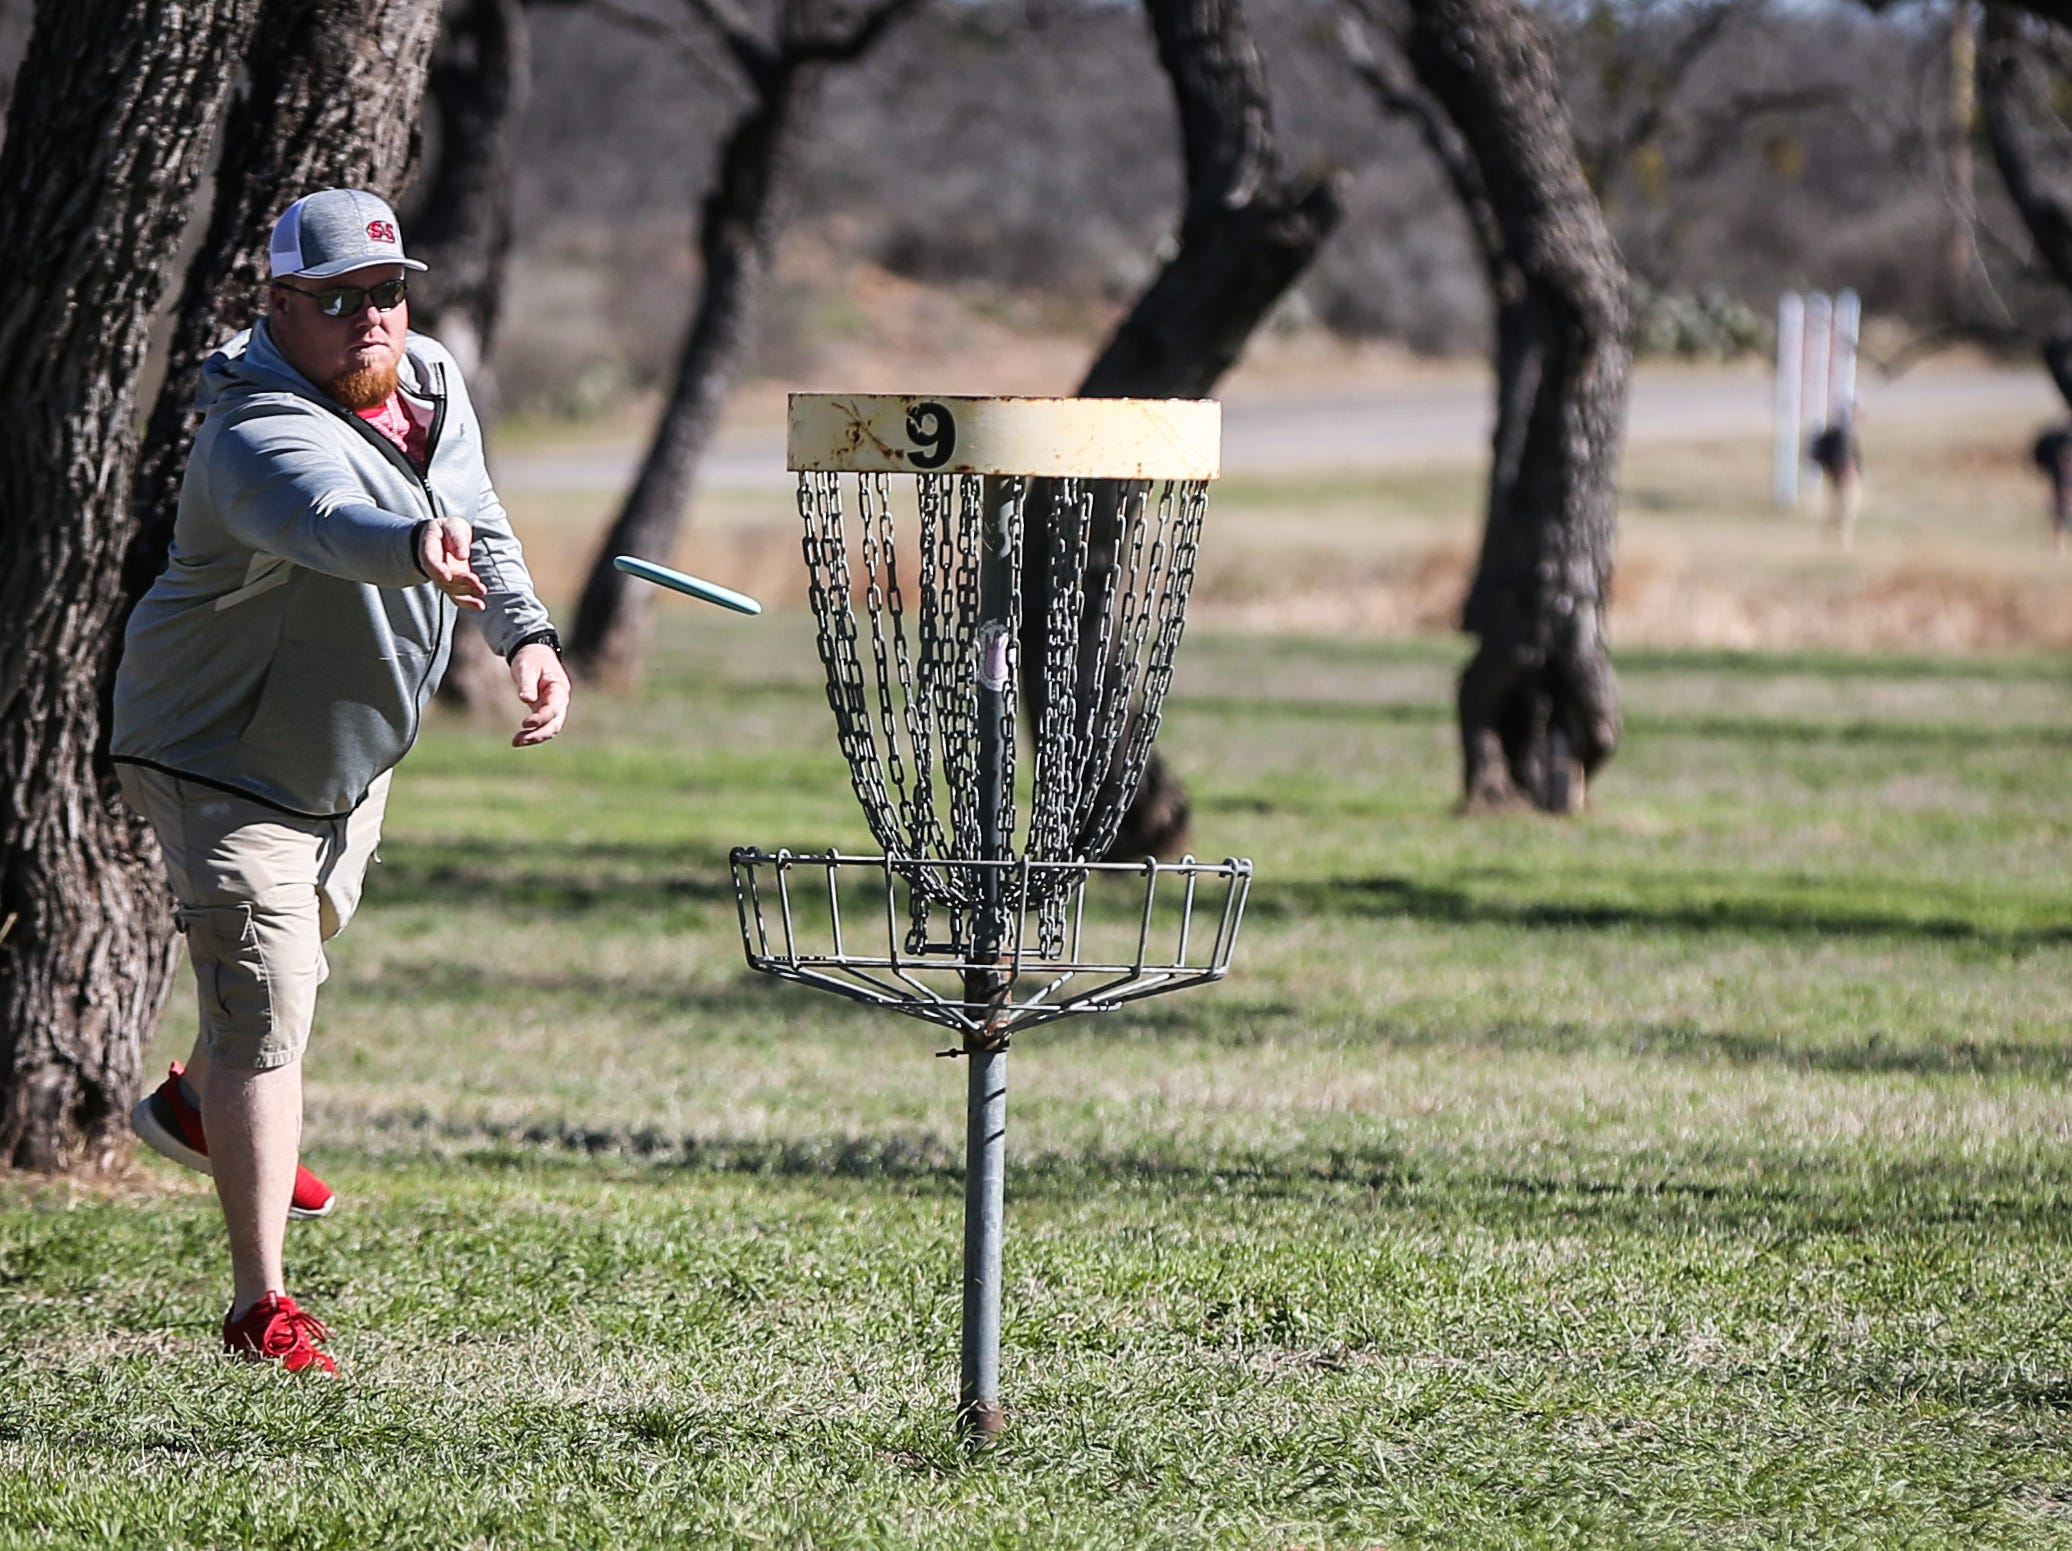 Peter Boen throws a disc during the Crush on the Concho tournament Saturday, March 9, 2019, at Middle Concho Park.